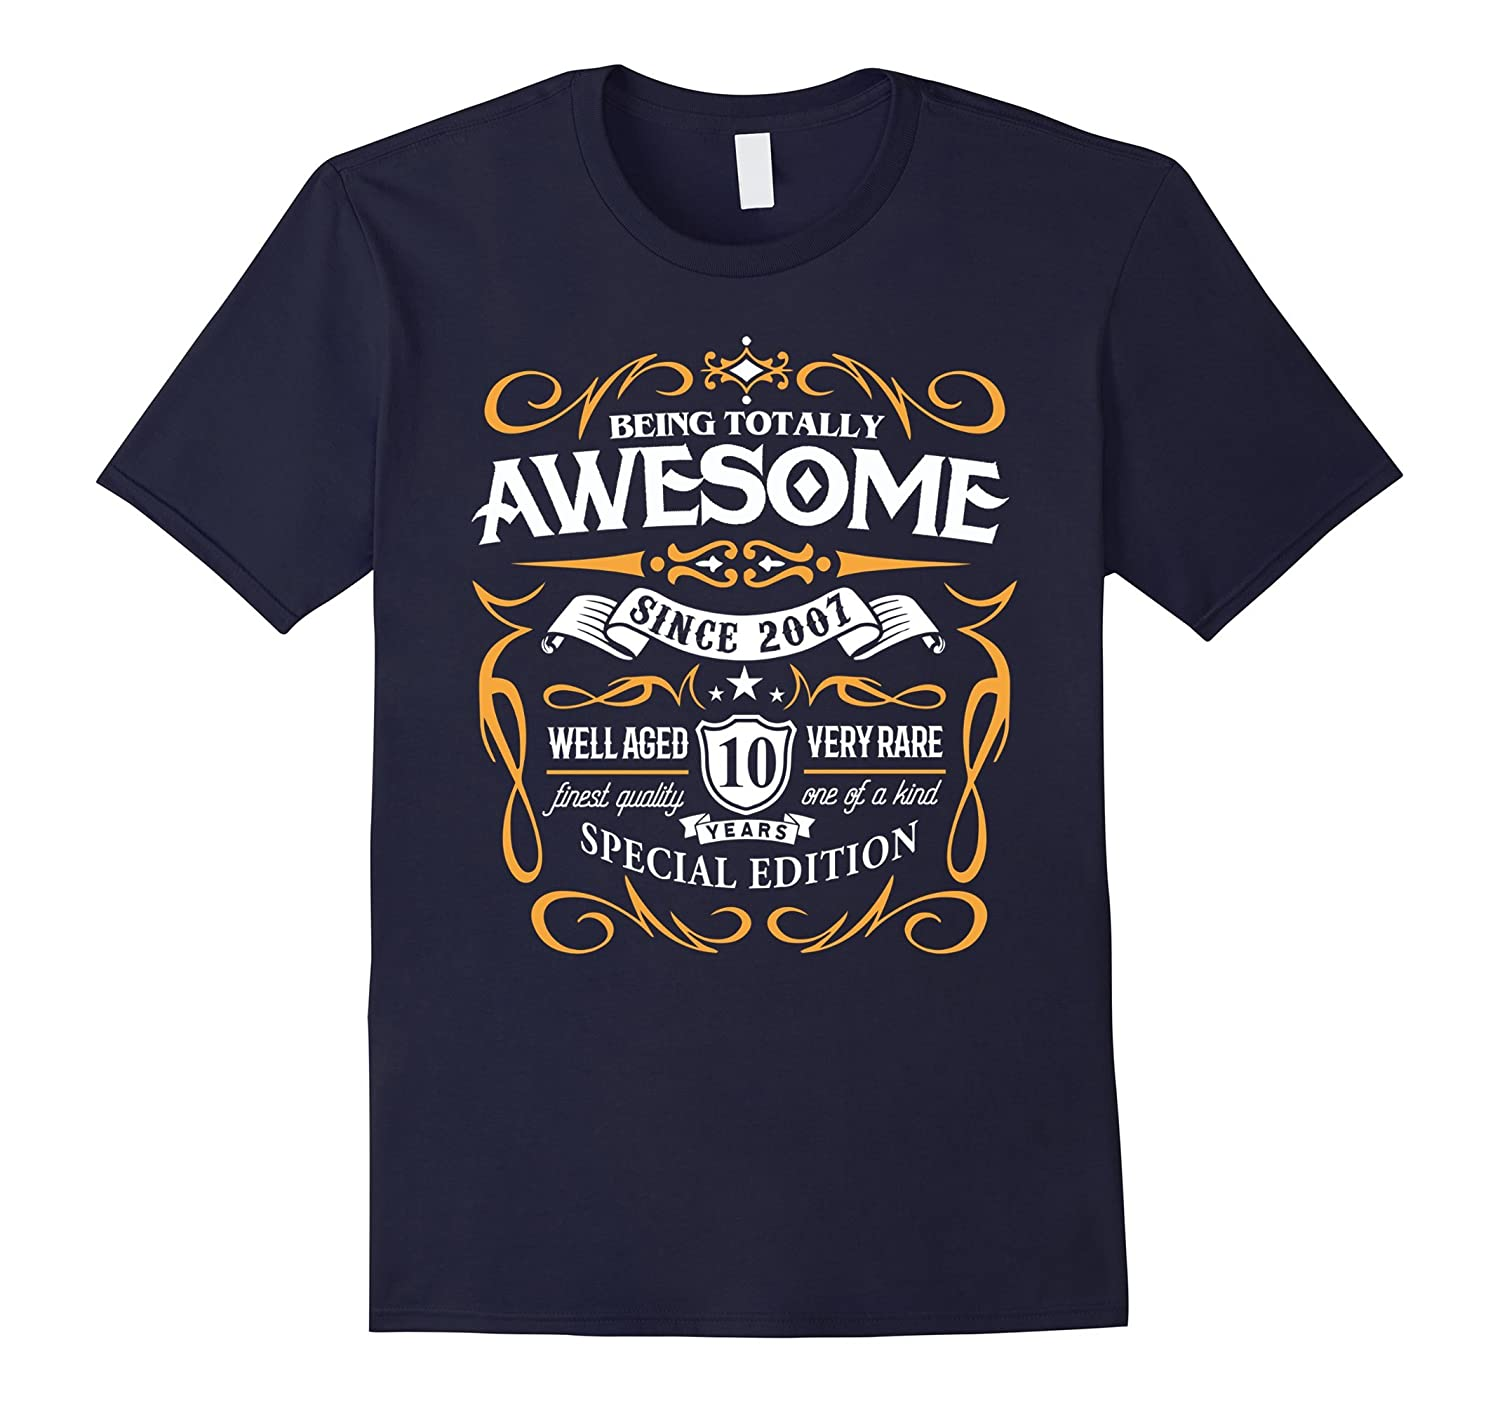 10th Birthday Gift T-Shirt Awesome Since 2007 Shirt for Kids-Vaci